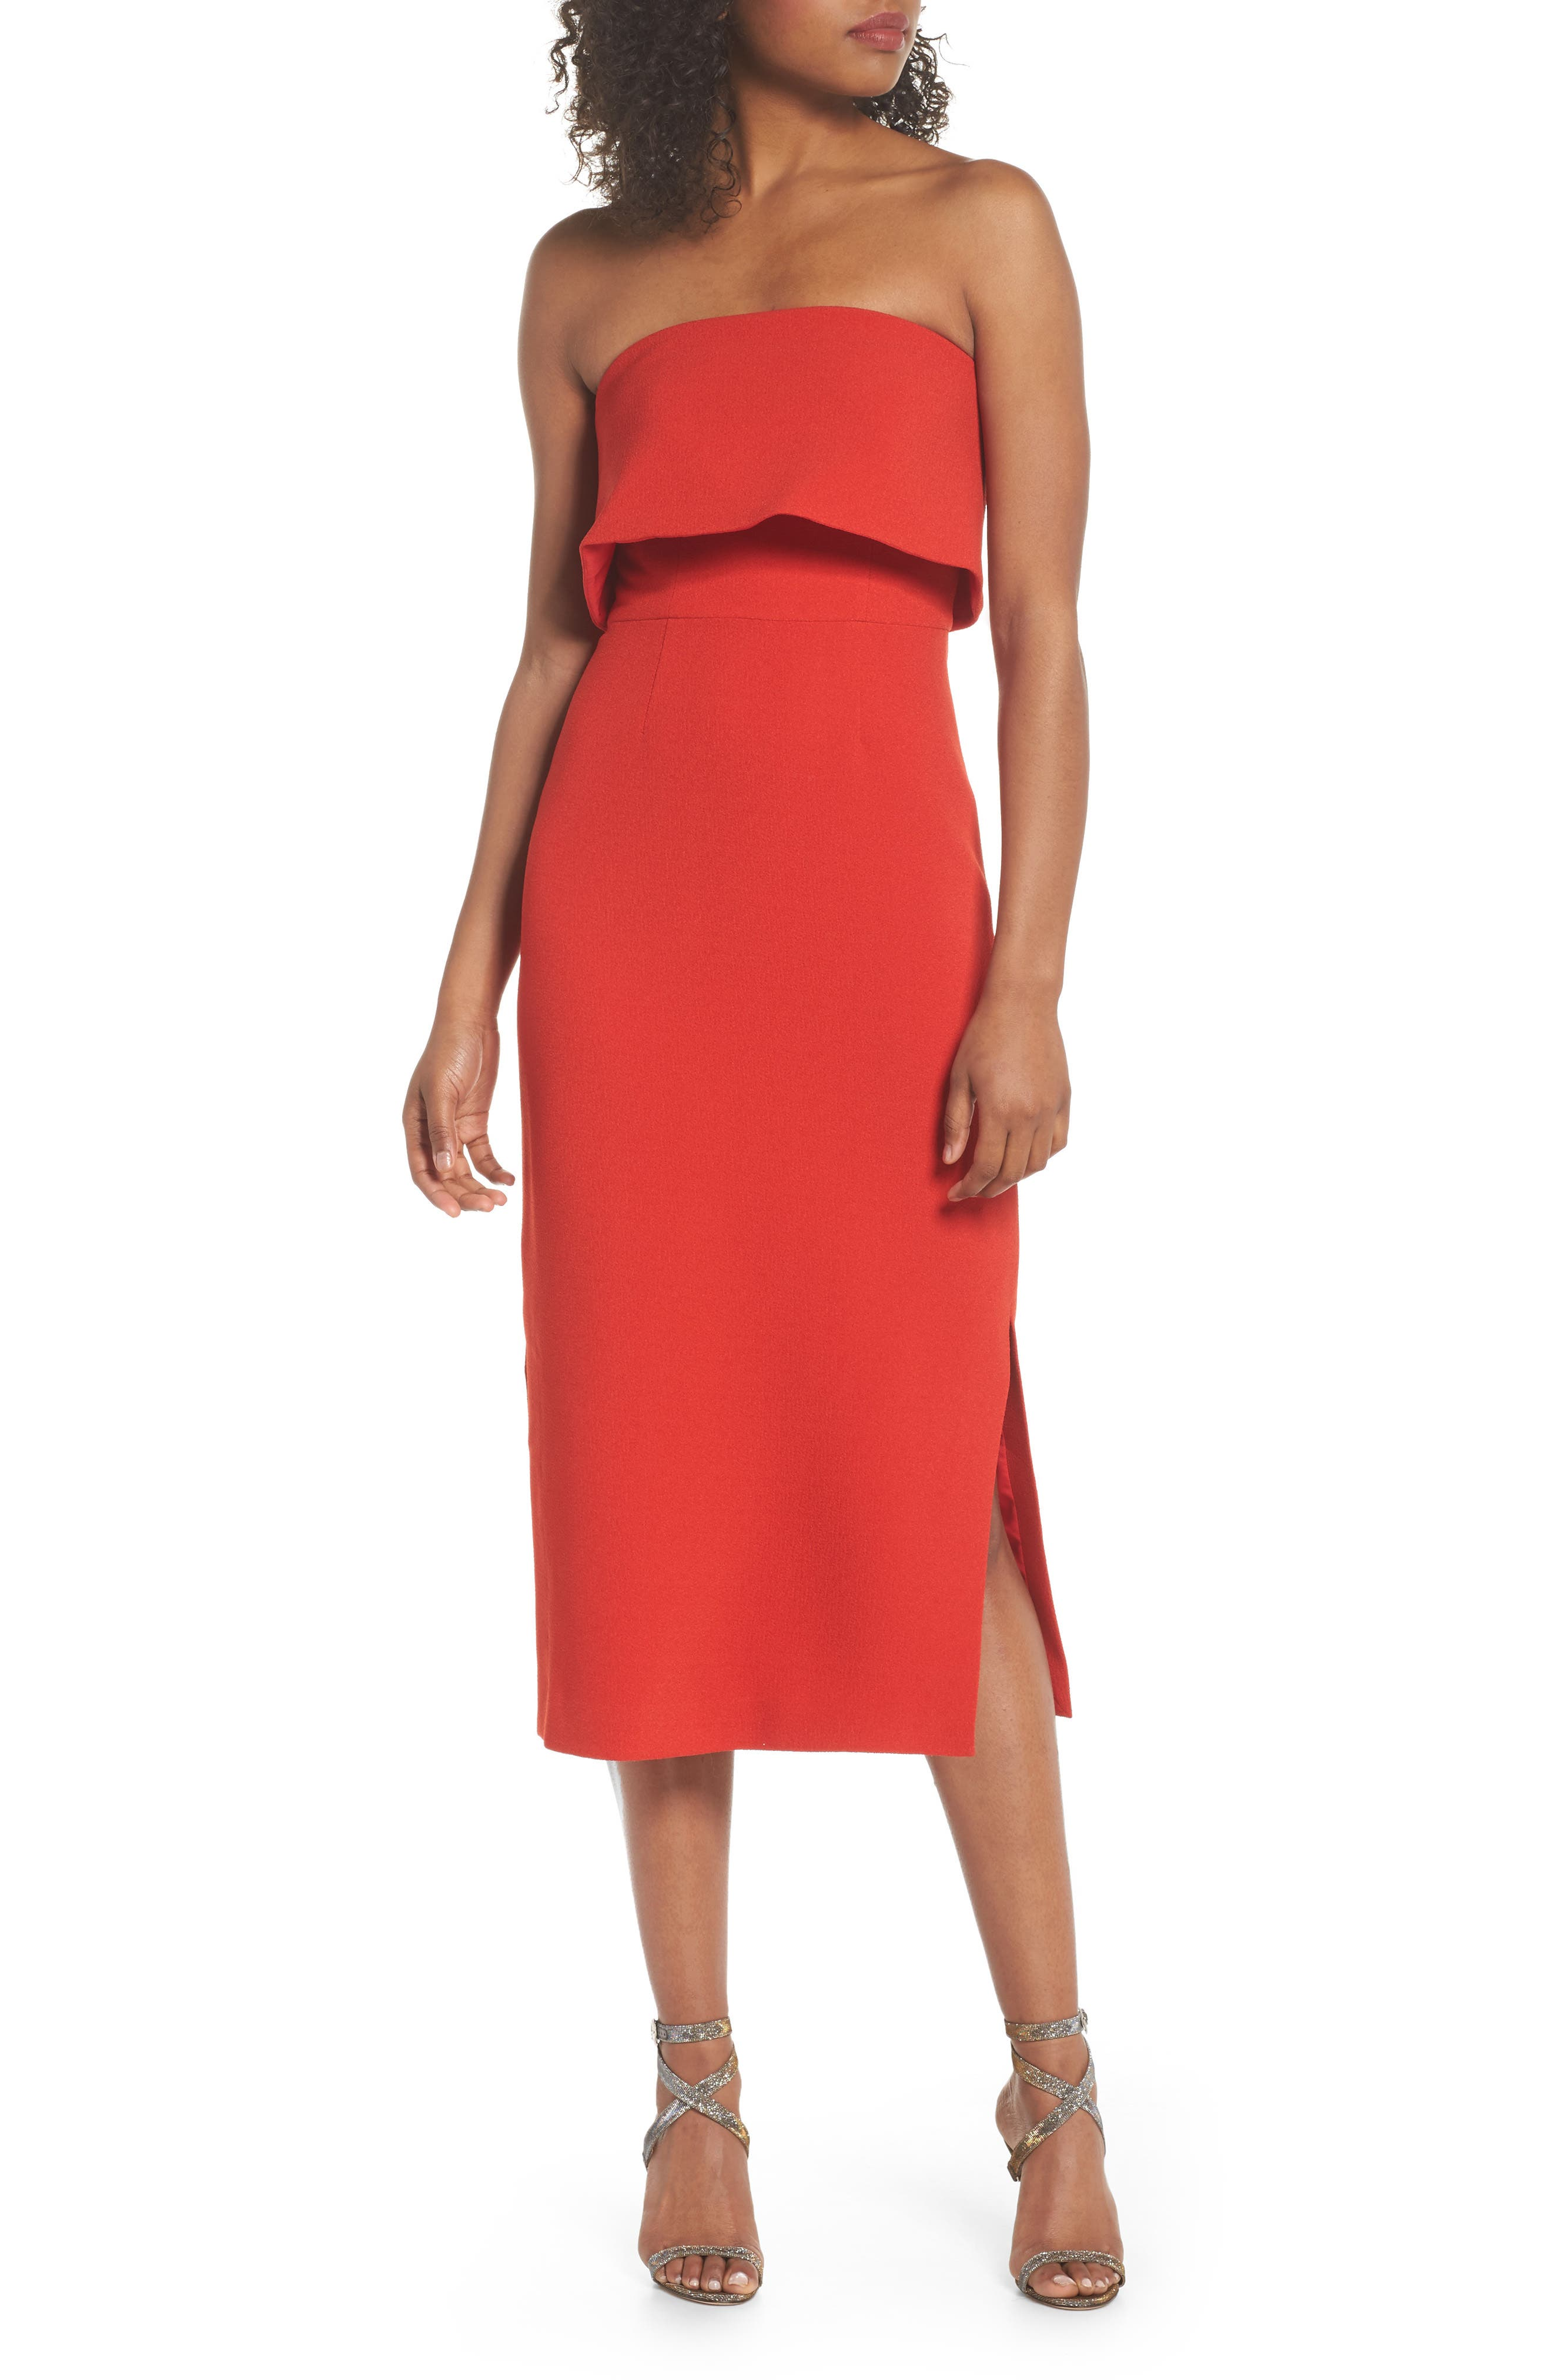 Entice Strapless Midi Dress,                             Main thumbnail 1, color,                             Red